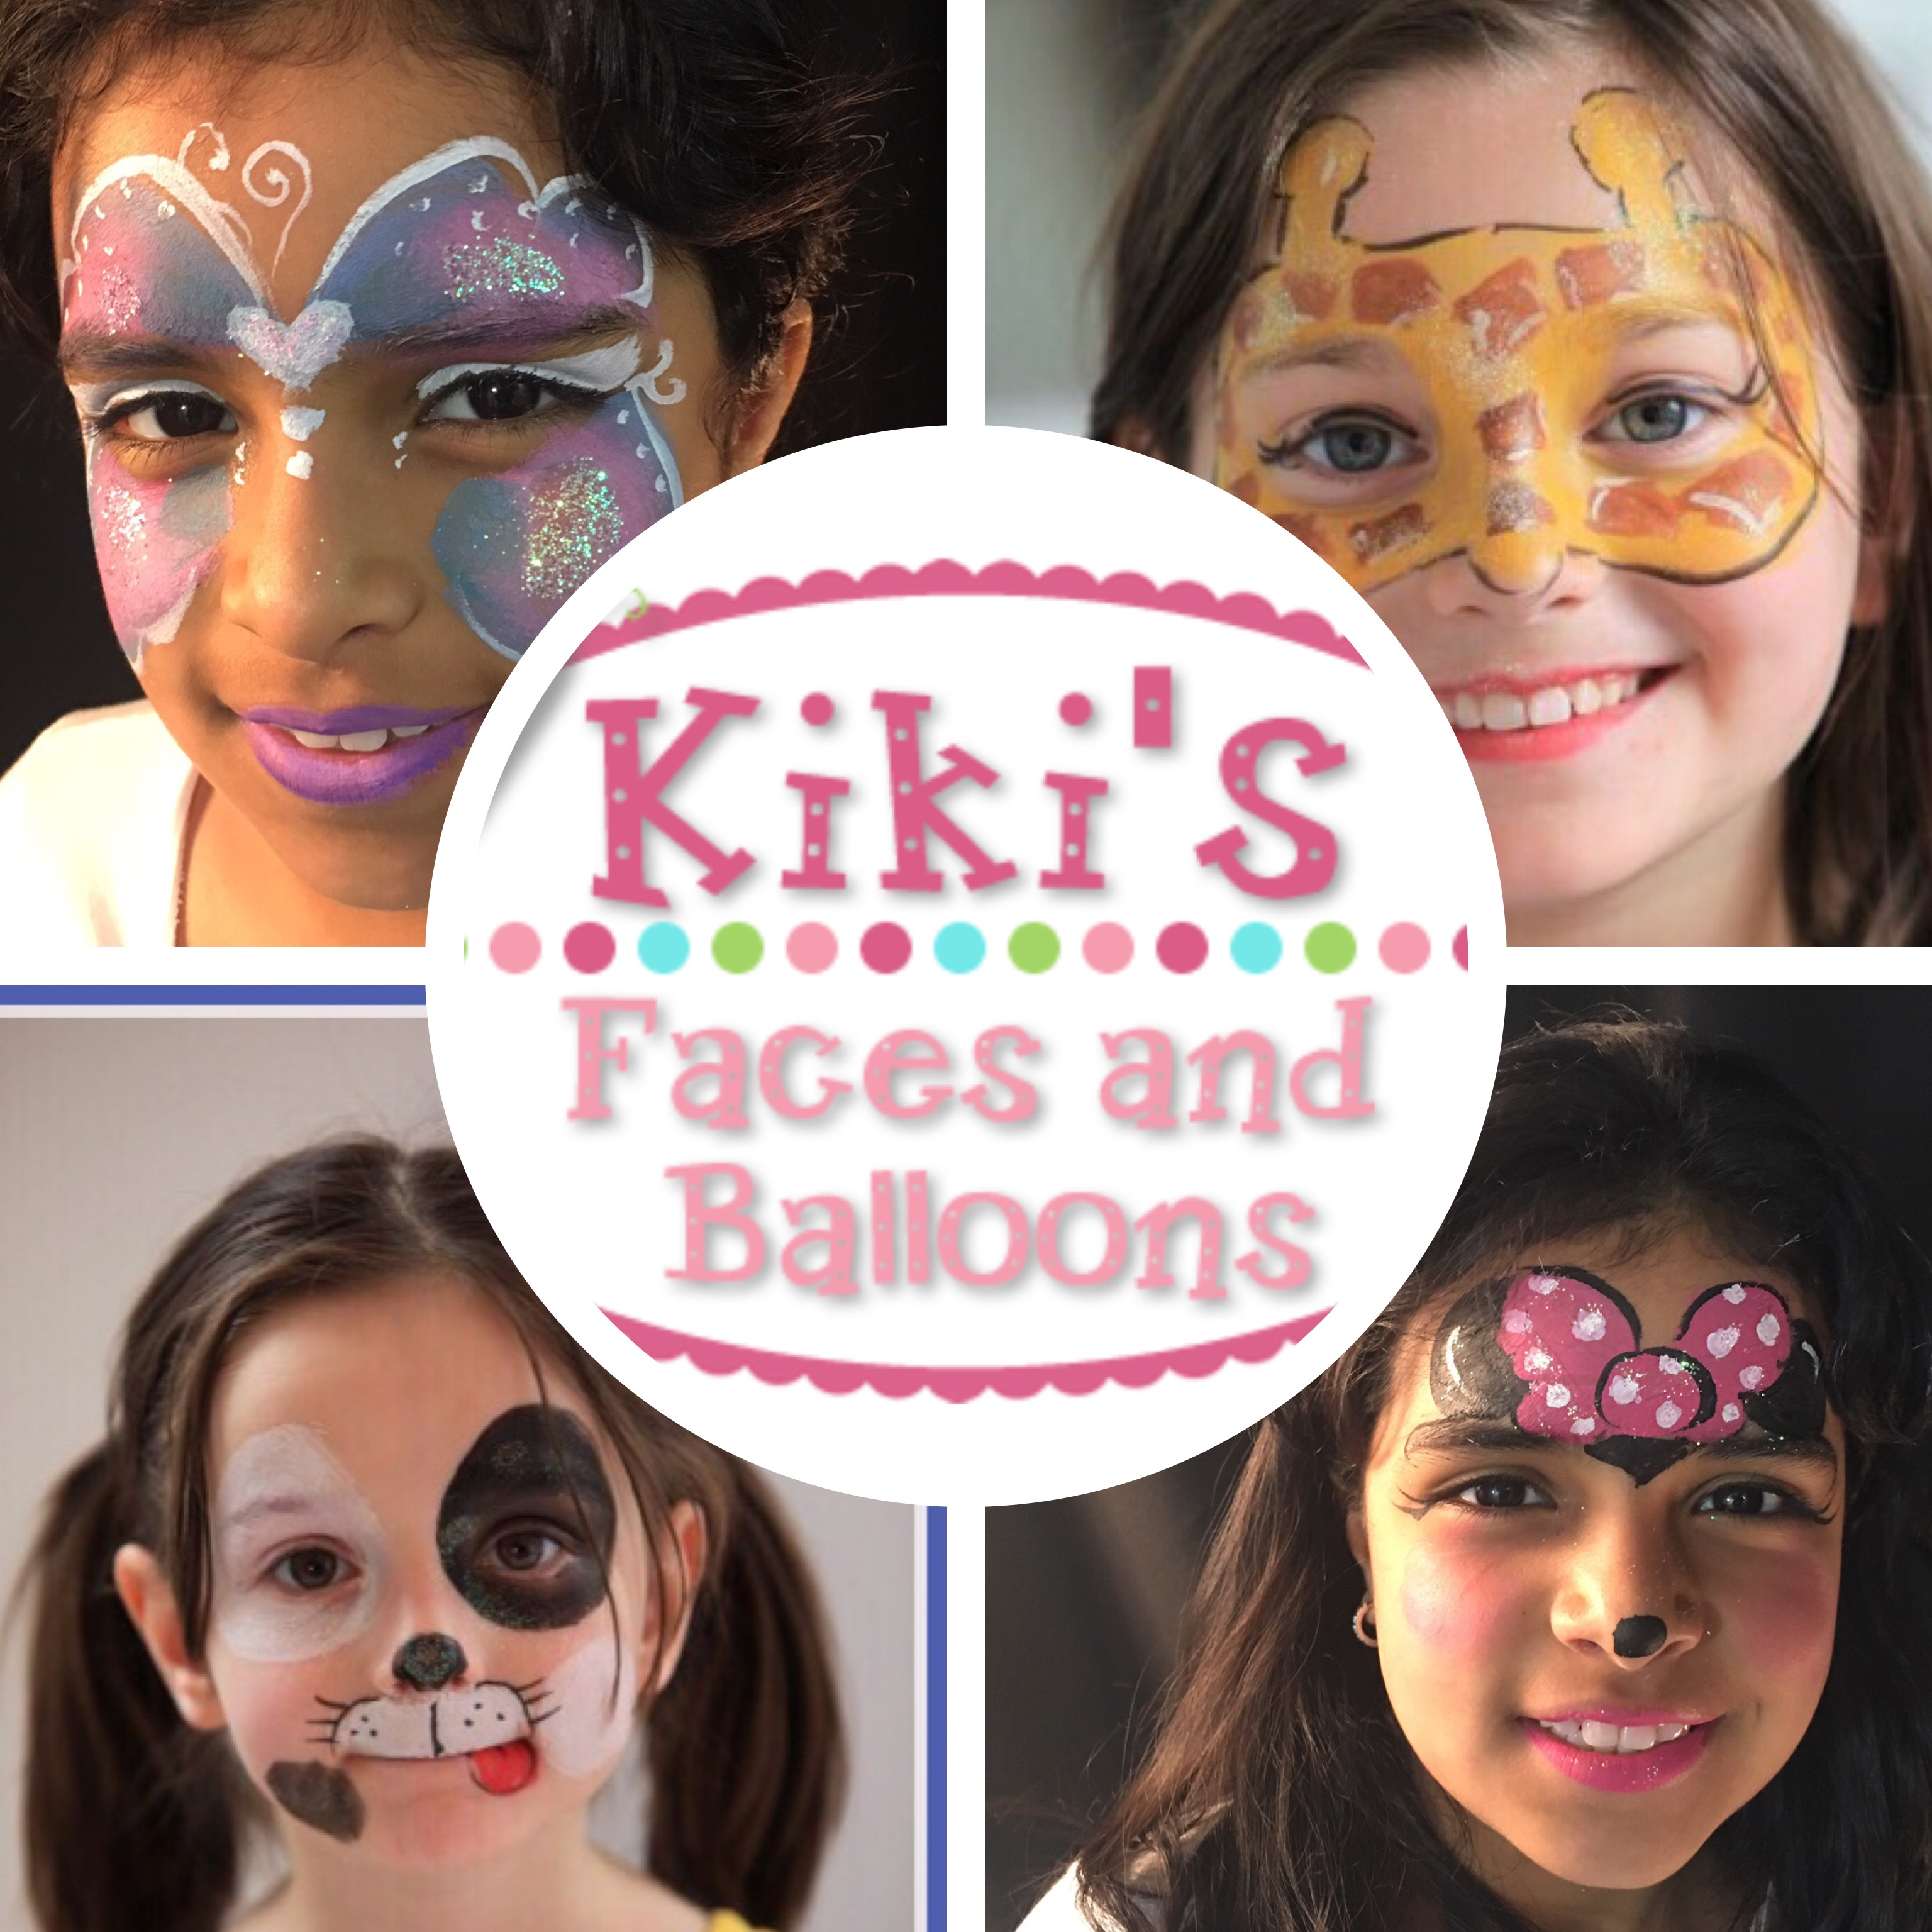 NYC Face Painting and Balloons Kids parties corporate events professional face painter and balloon artist NY princess face painter balloons Midtown FiDi Battery Park UES Chelsea UWS Soho Times Square Hudson Yards